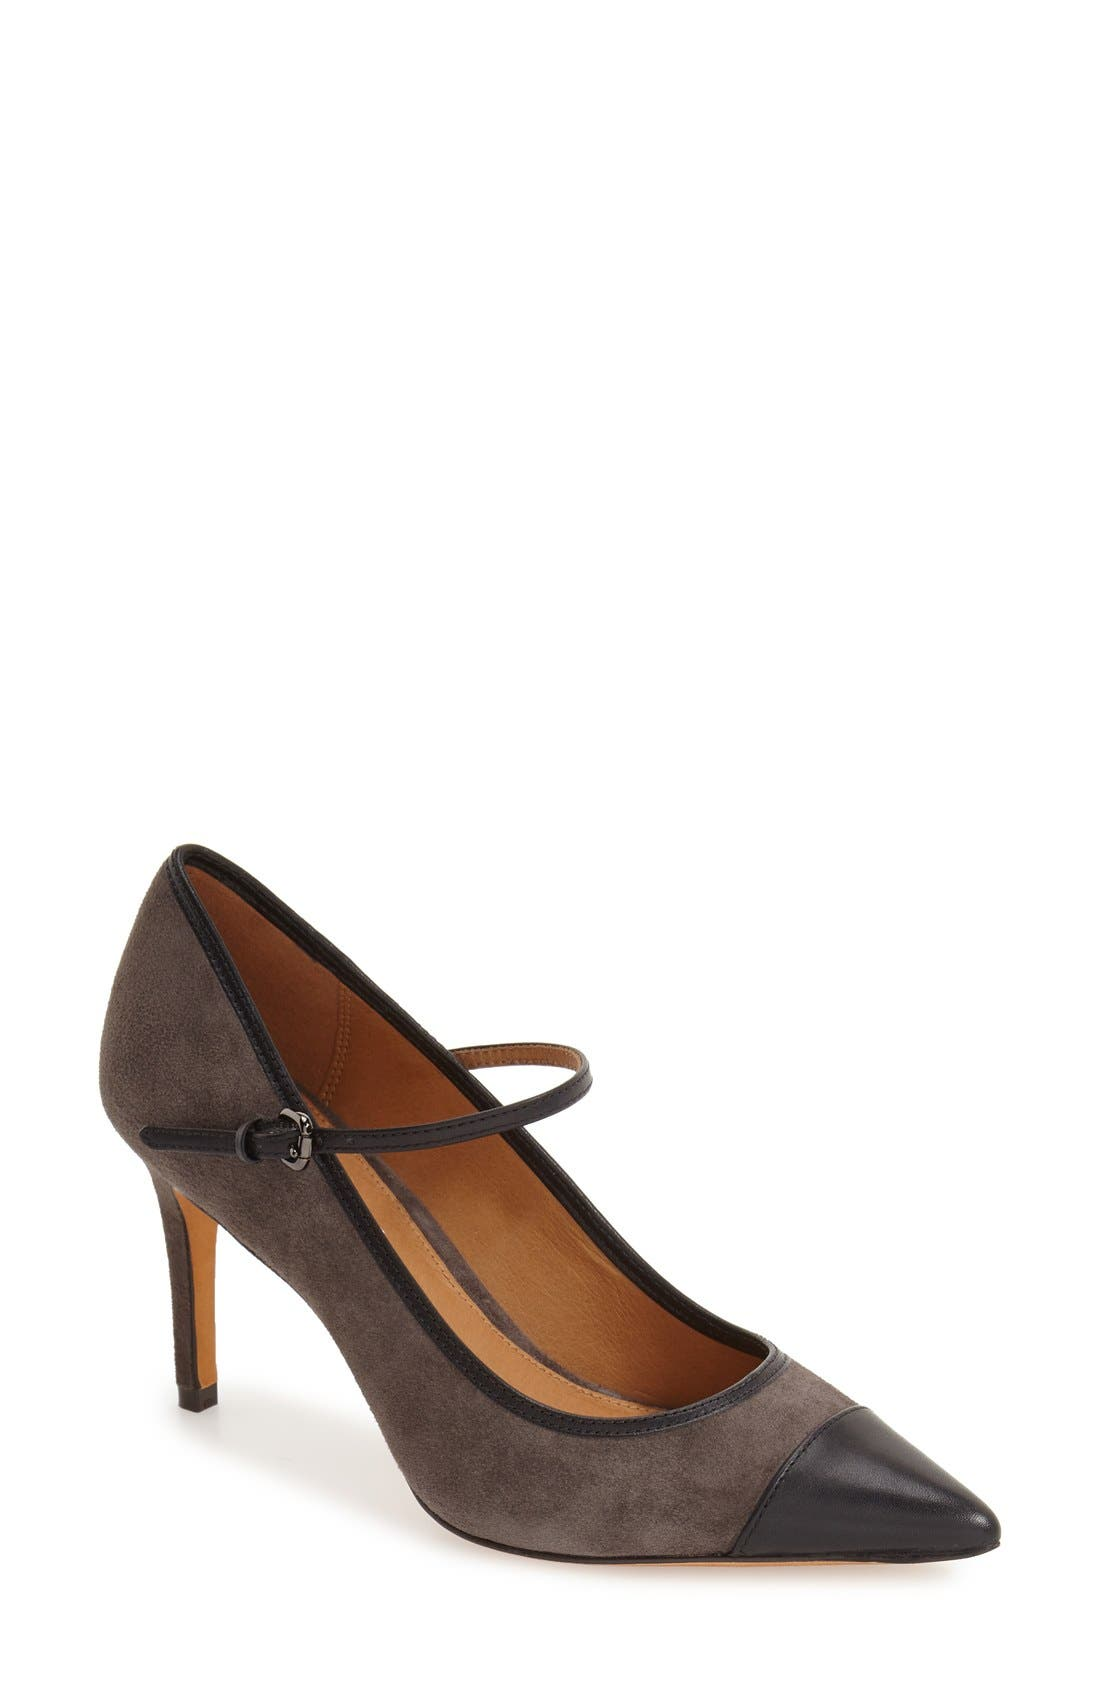 Alternate Image 1 Selected - COACH 'Smith' Mary Jane Pump (Women)